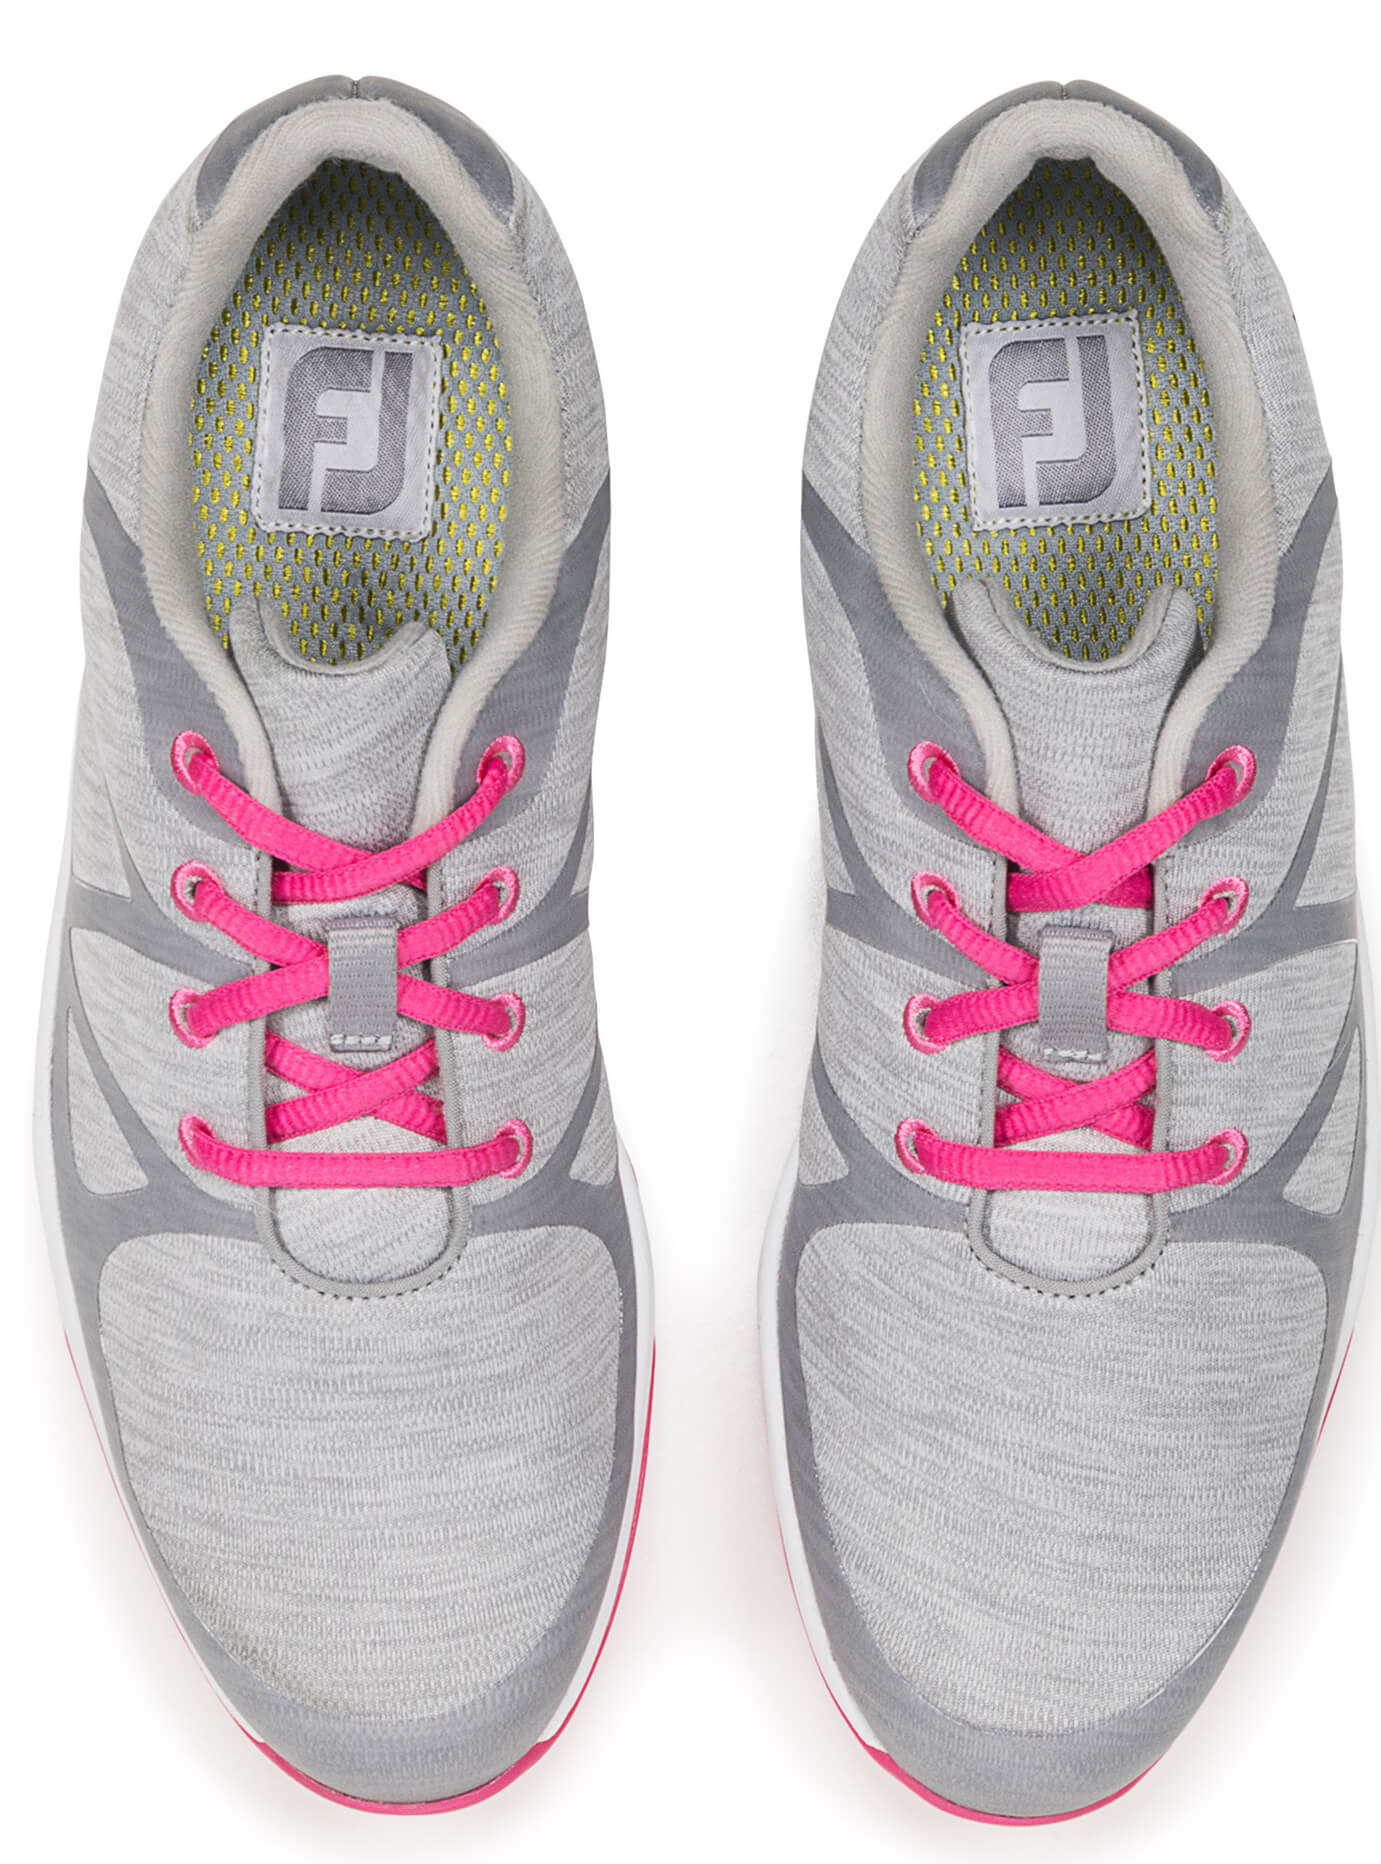 FootJoy-Women-039-s-Leisure-Golf-Shoes-Spikeless-Ladies-New-Choose-Color-amp-Size thumbnail 6